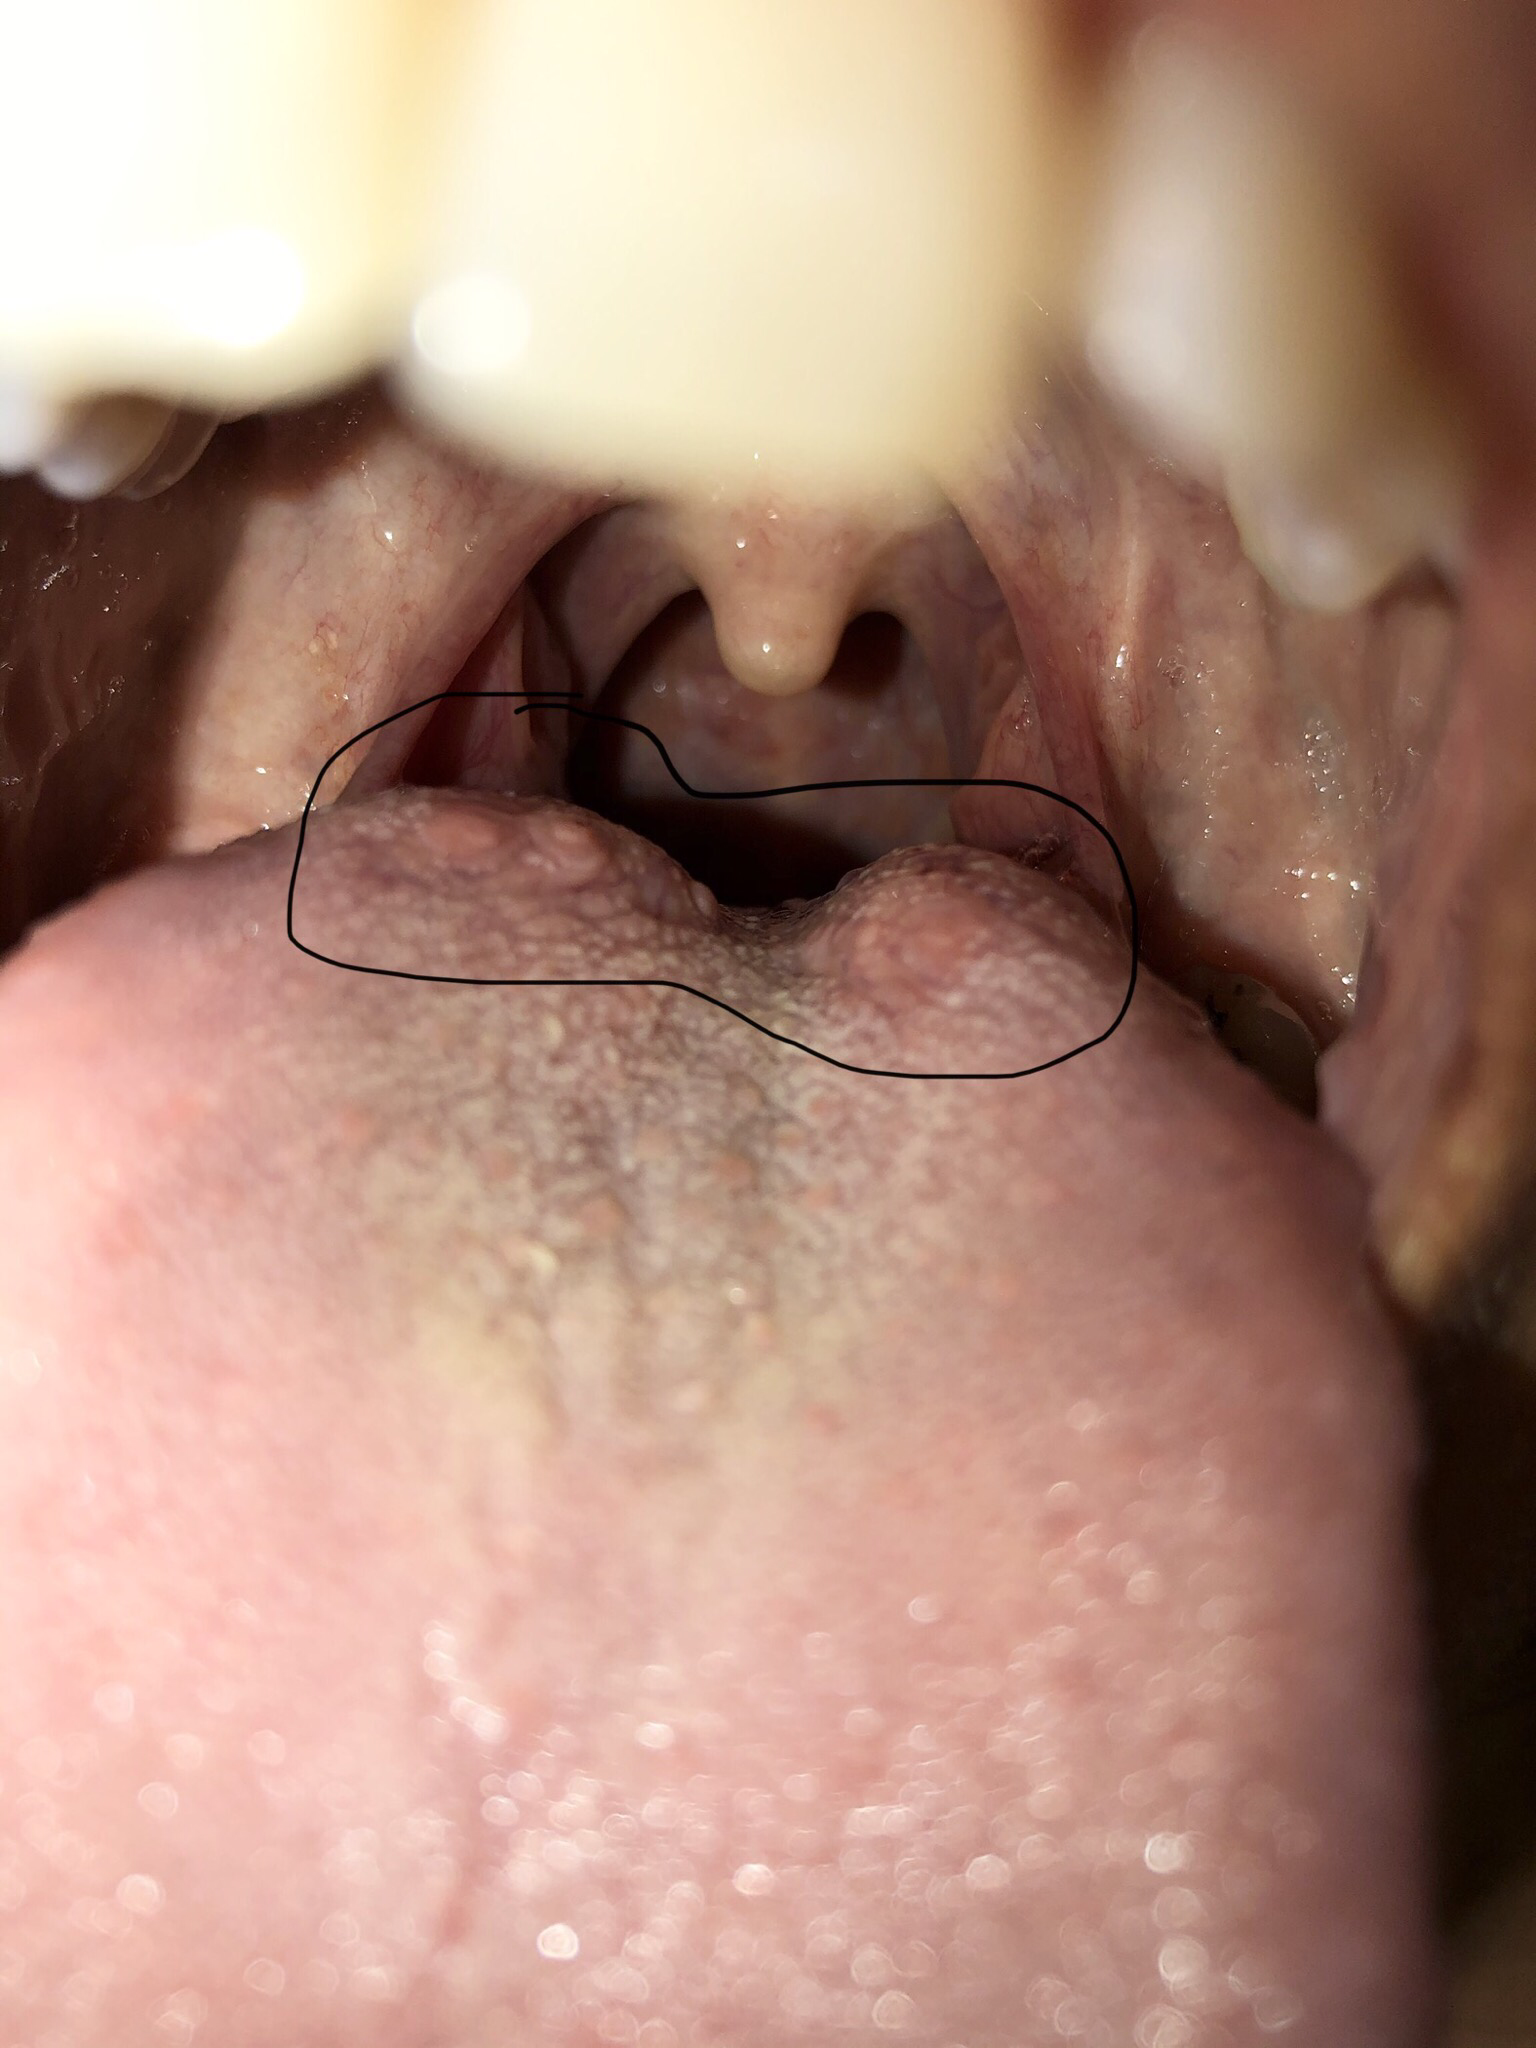 hpv warts back of tongue human papillomavirus infection occurrence